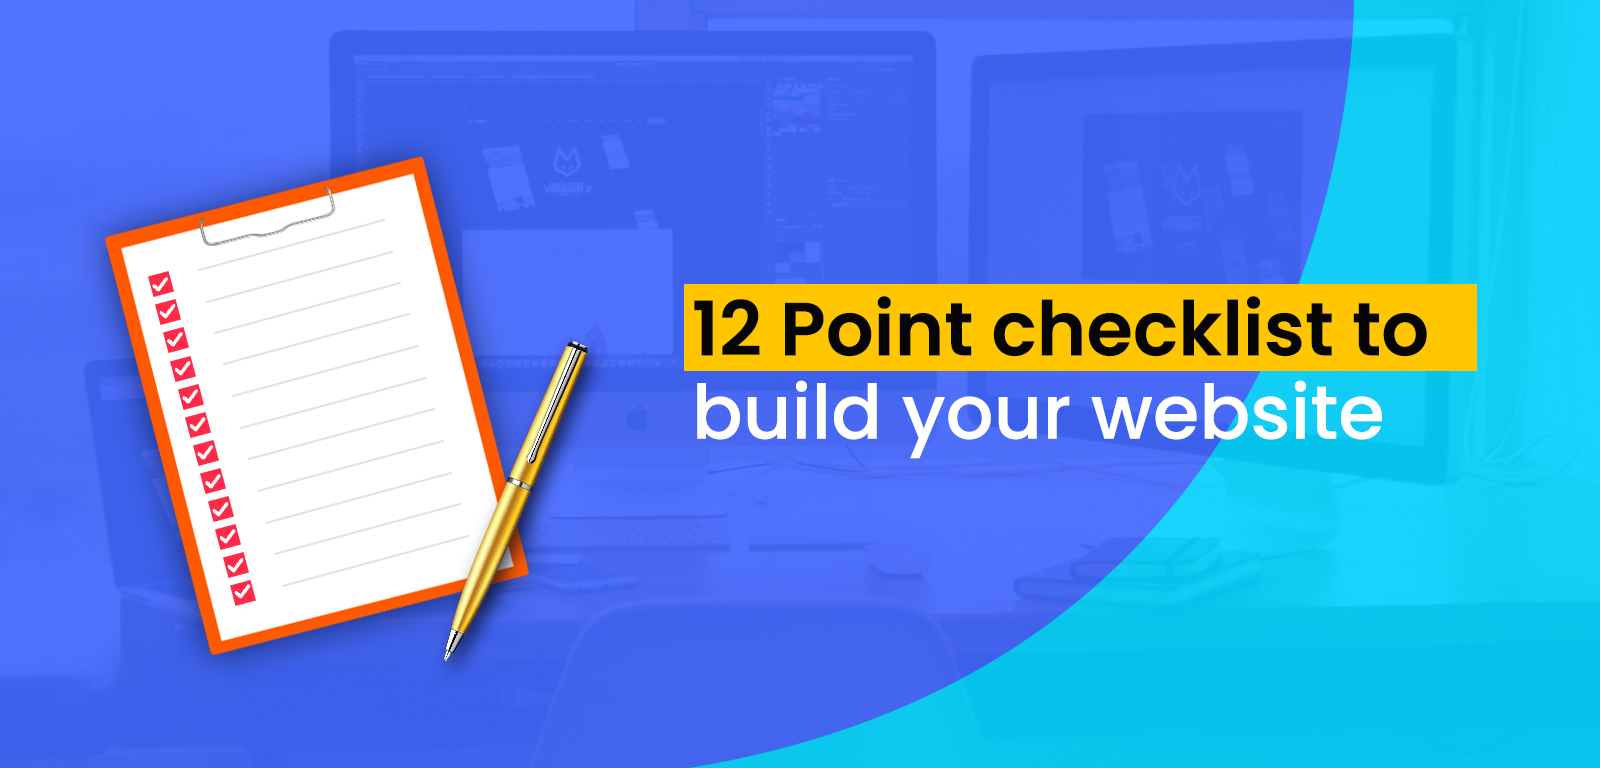 12 POINT CHECKLIST TO BUILD YOUR WEBSITE